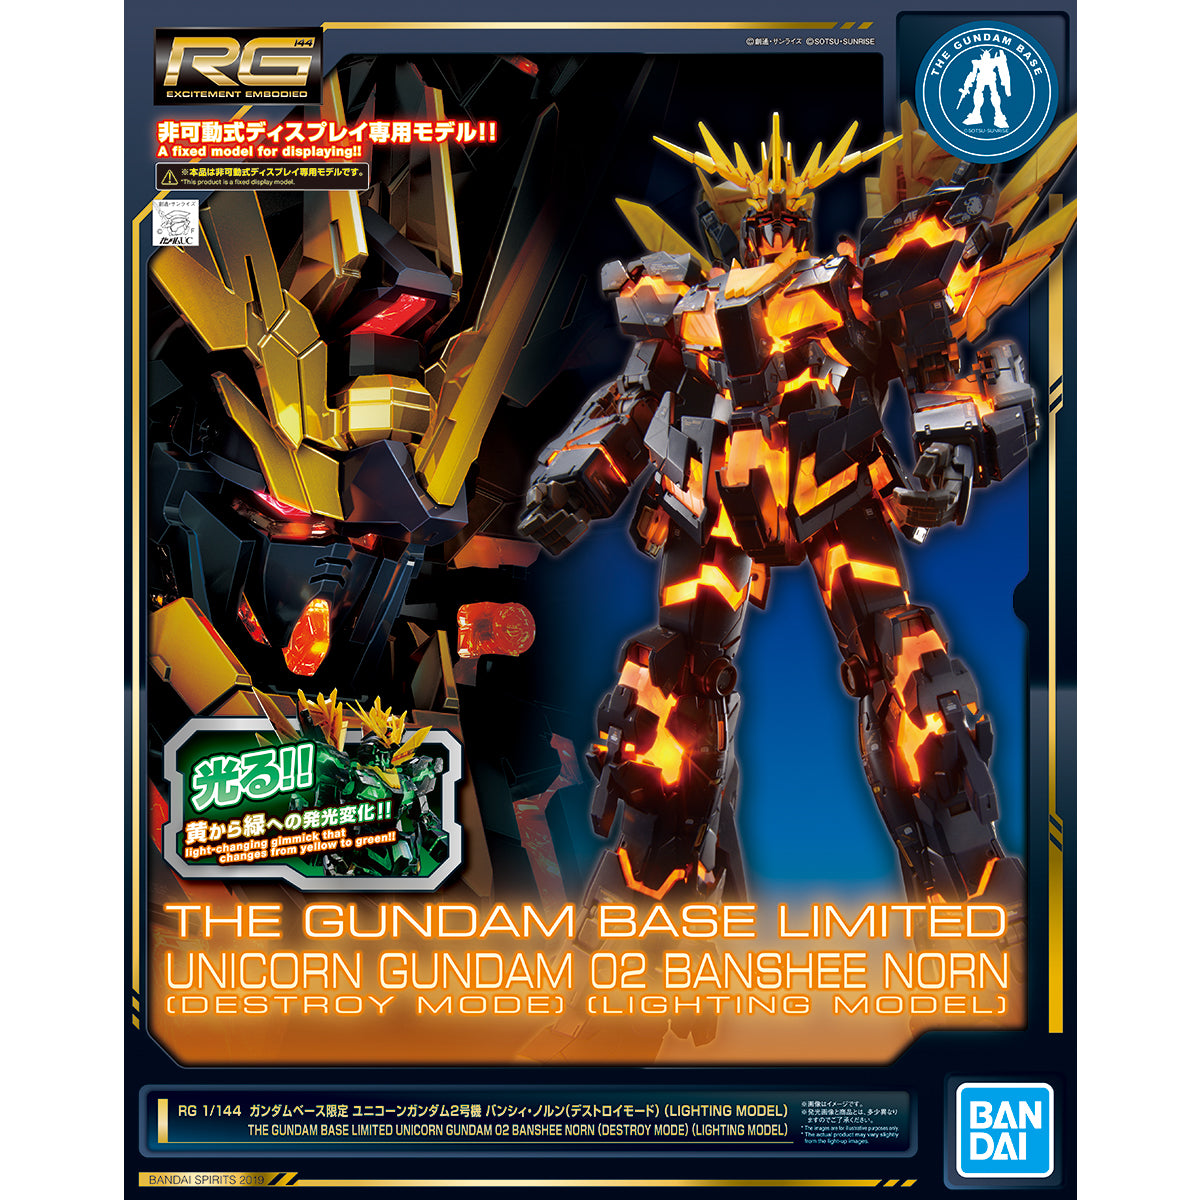 RG 1/144 Gundam Base Limited Unicorn Gundam Unit 2 Banshee Norn (Destroy Mode) (LIGHTING MODEL)